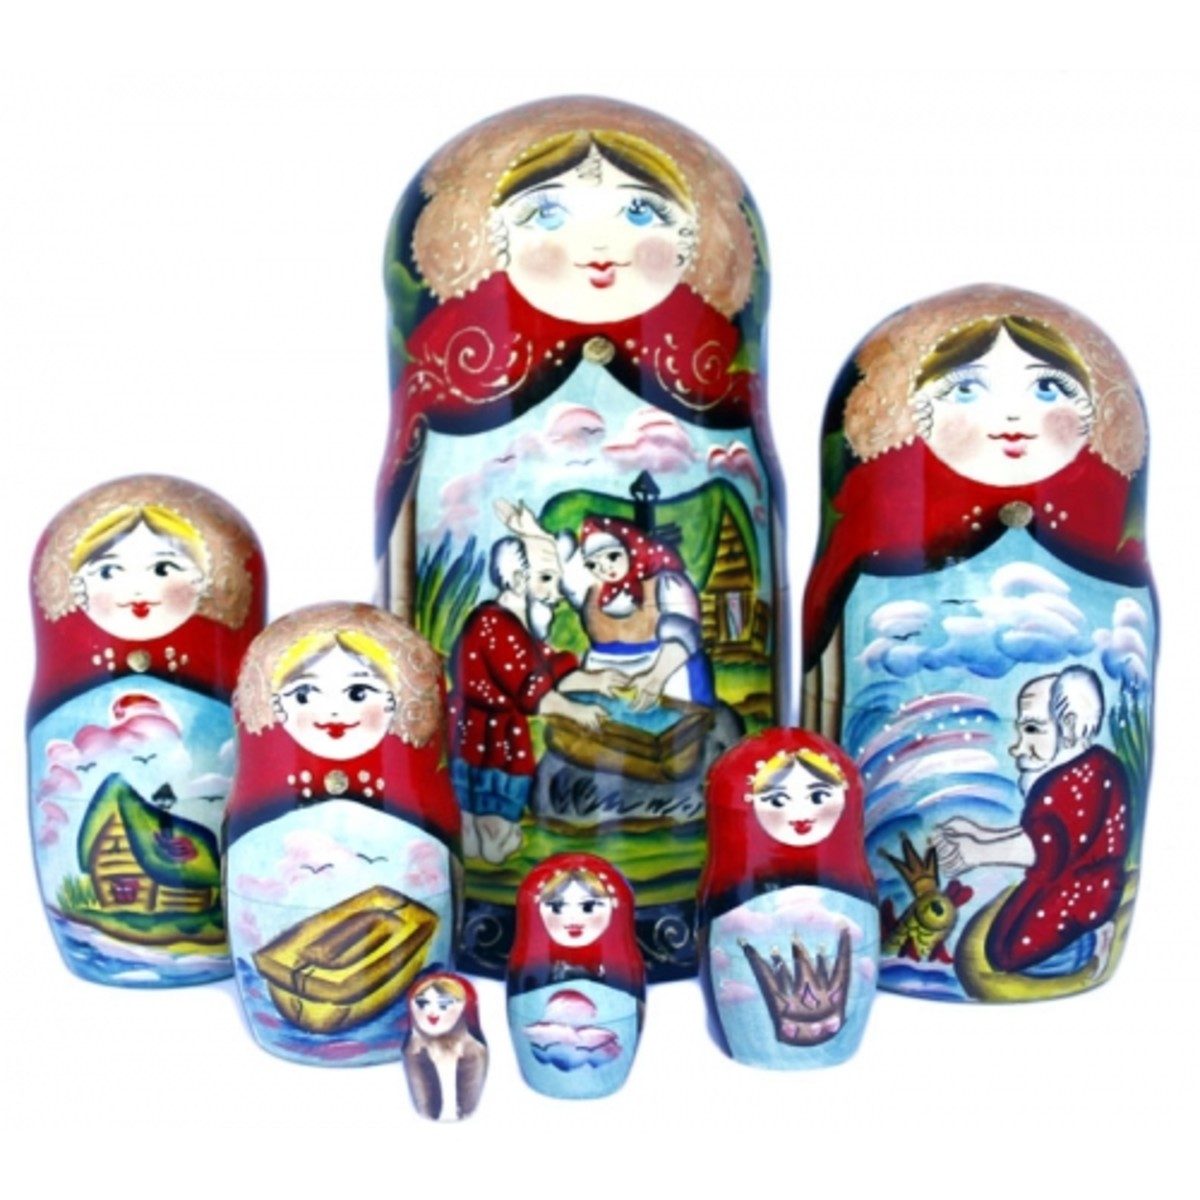 "Beruska dolls depicting ""The Fisherman and the Magic Fish"", from Russian Fairy Tales."